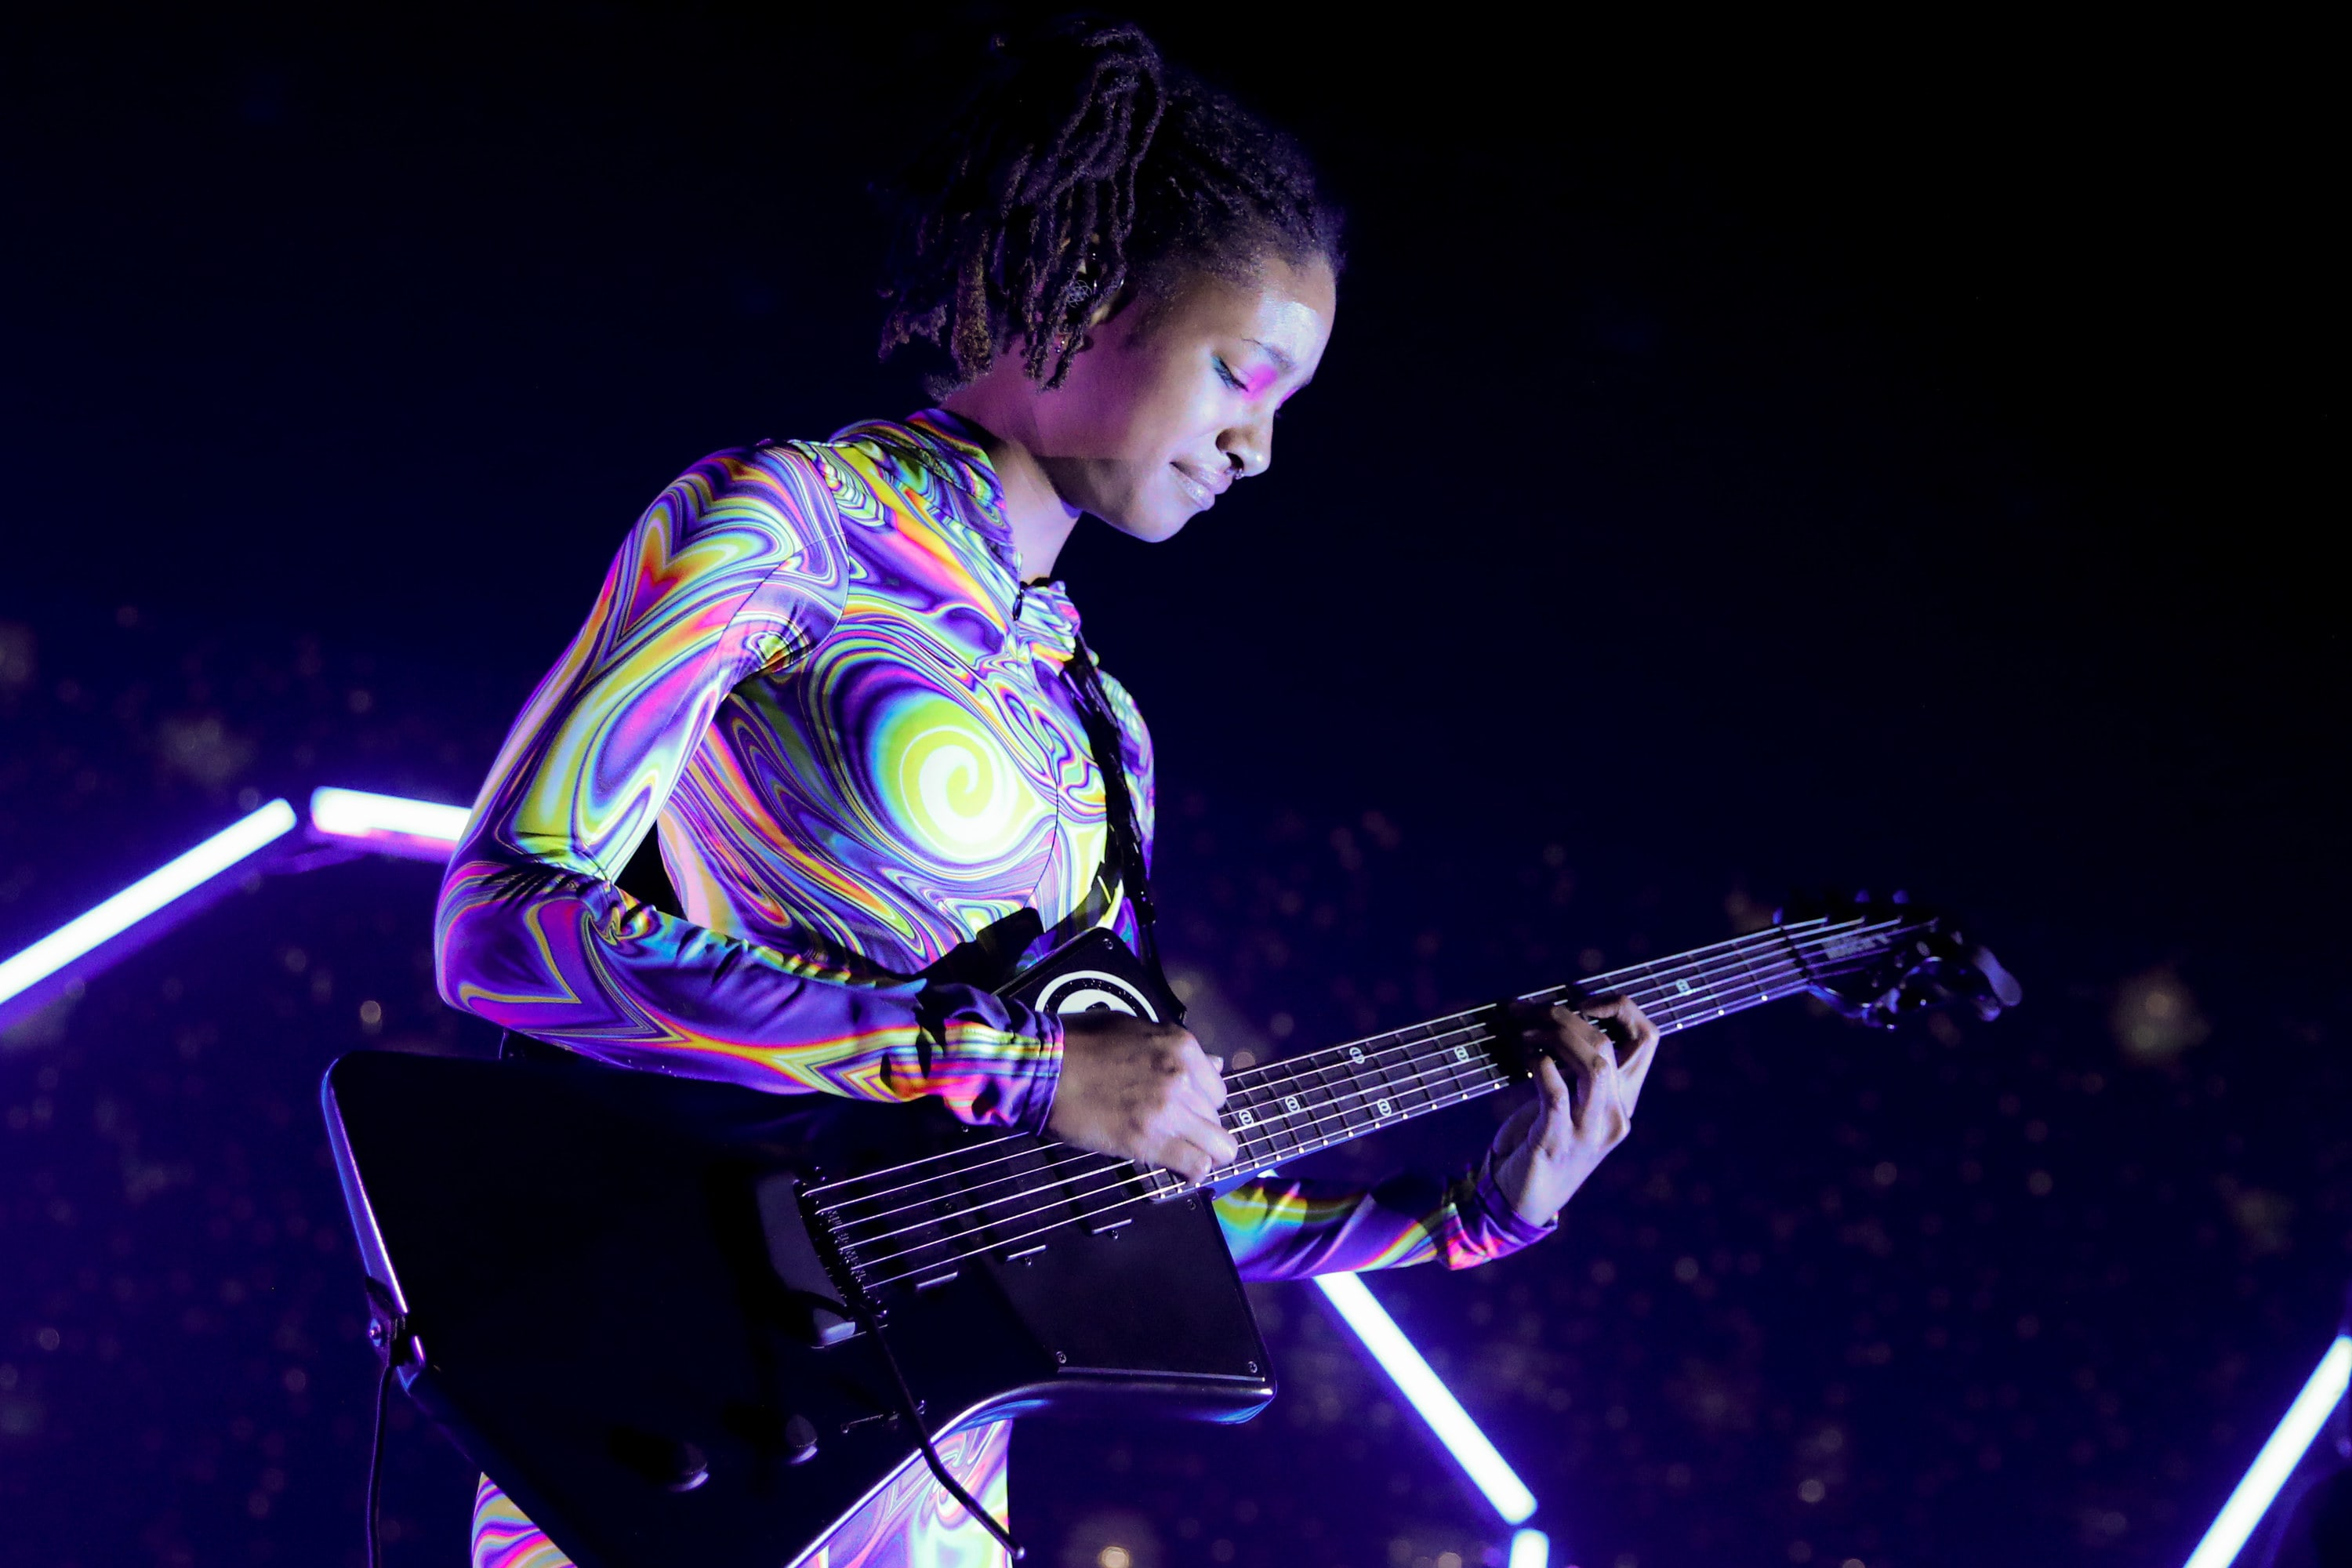 Willow Smith performs at The Novo by Microsoft on December 19, 2019 in Los Angeles City